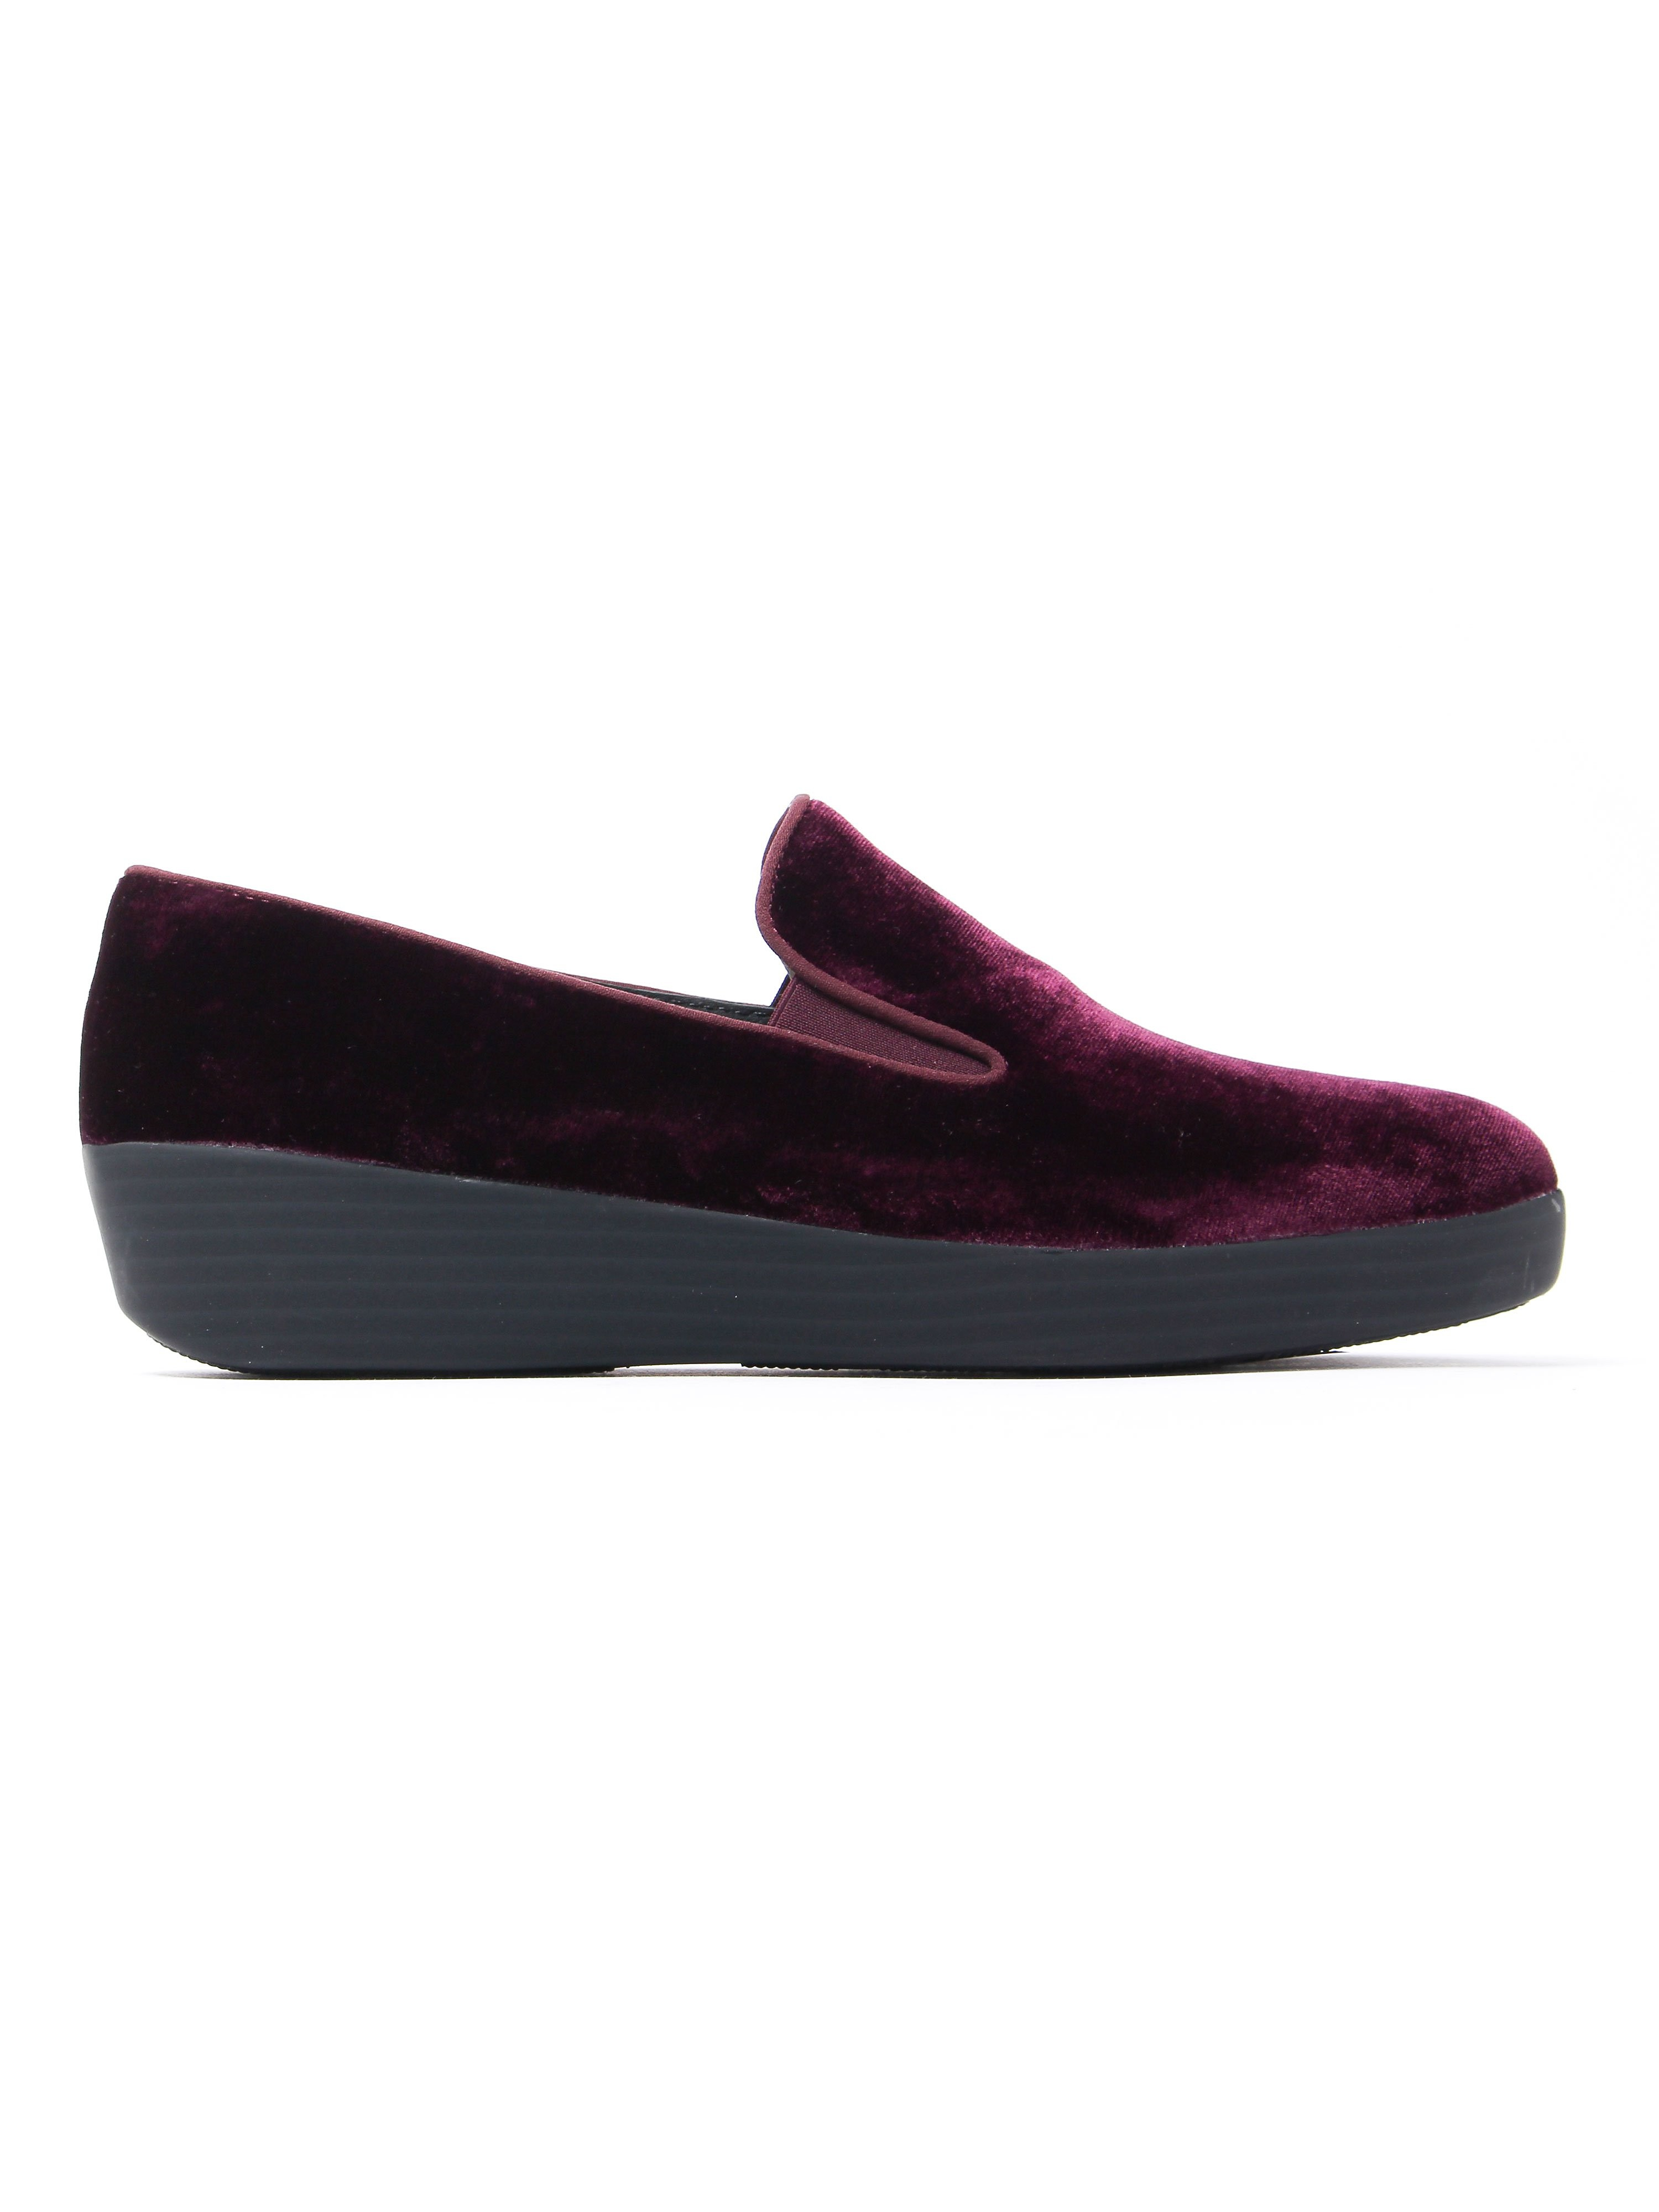 FitFlop Women's Superskate Loafers - Purple Velvet